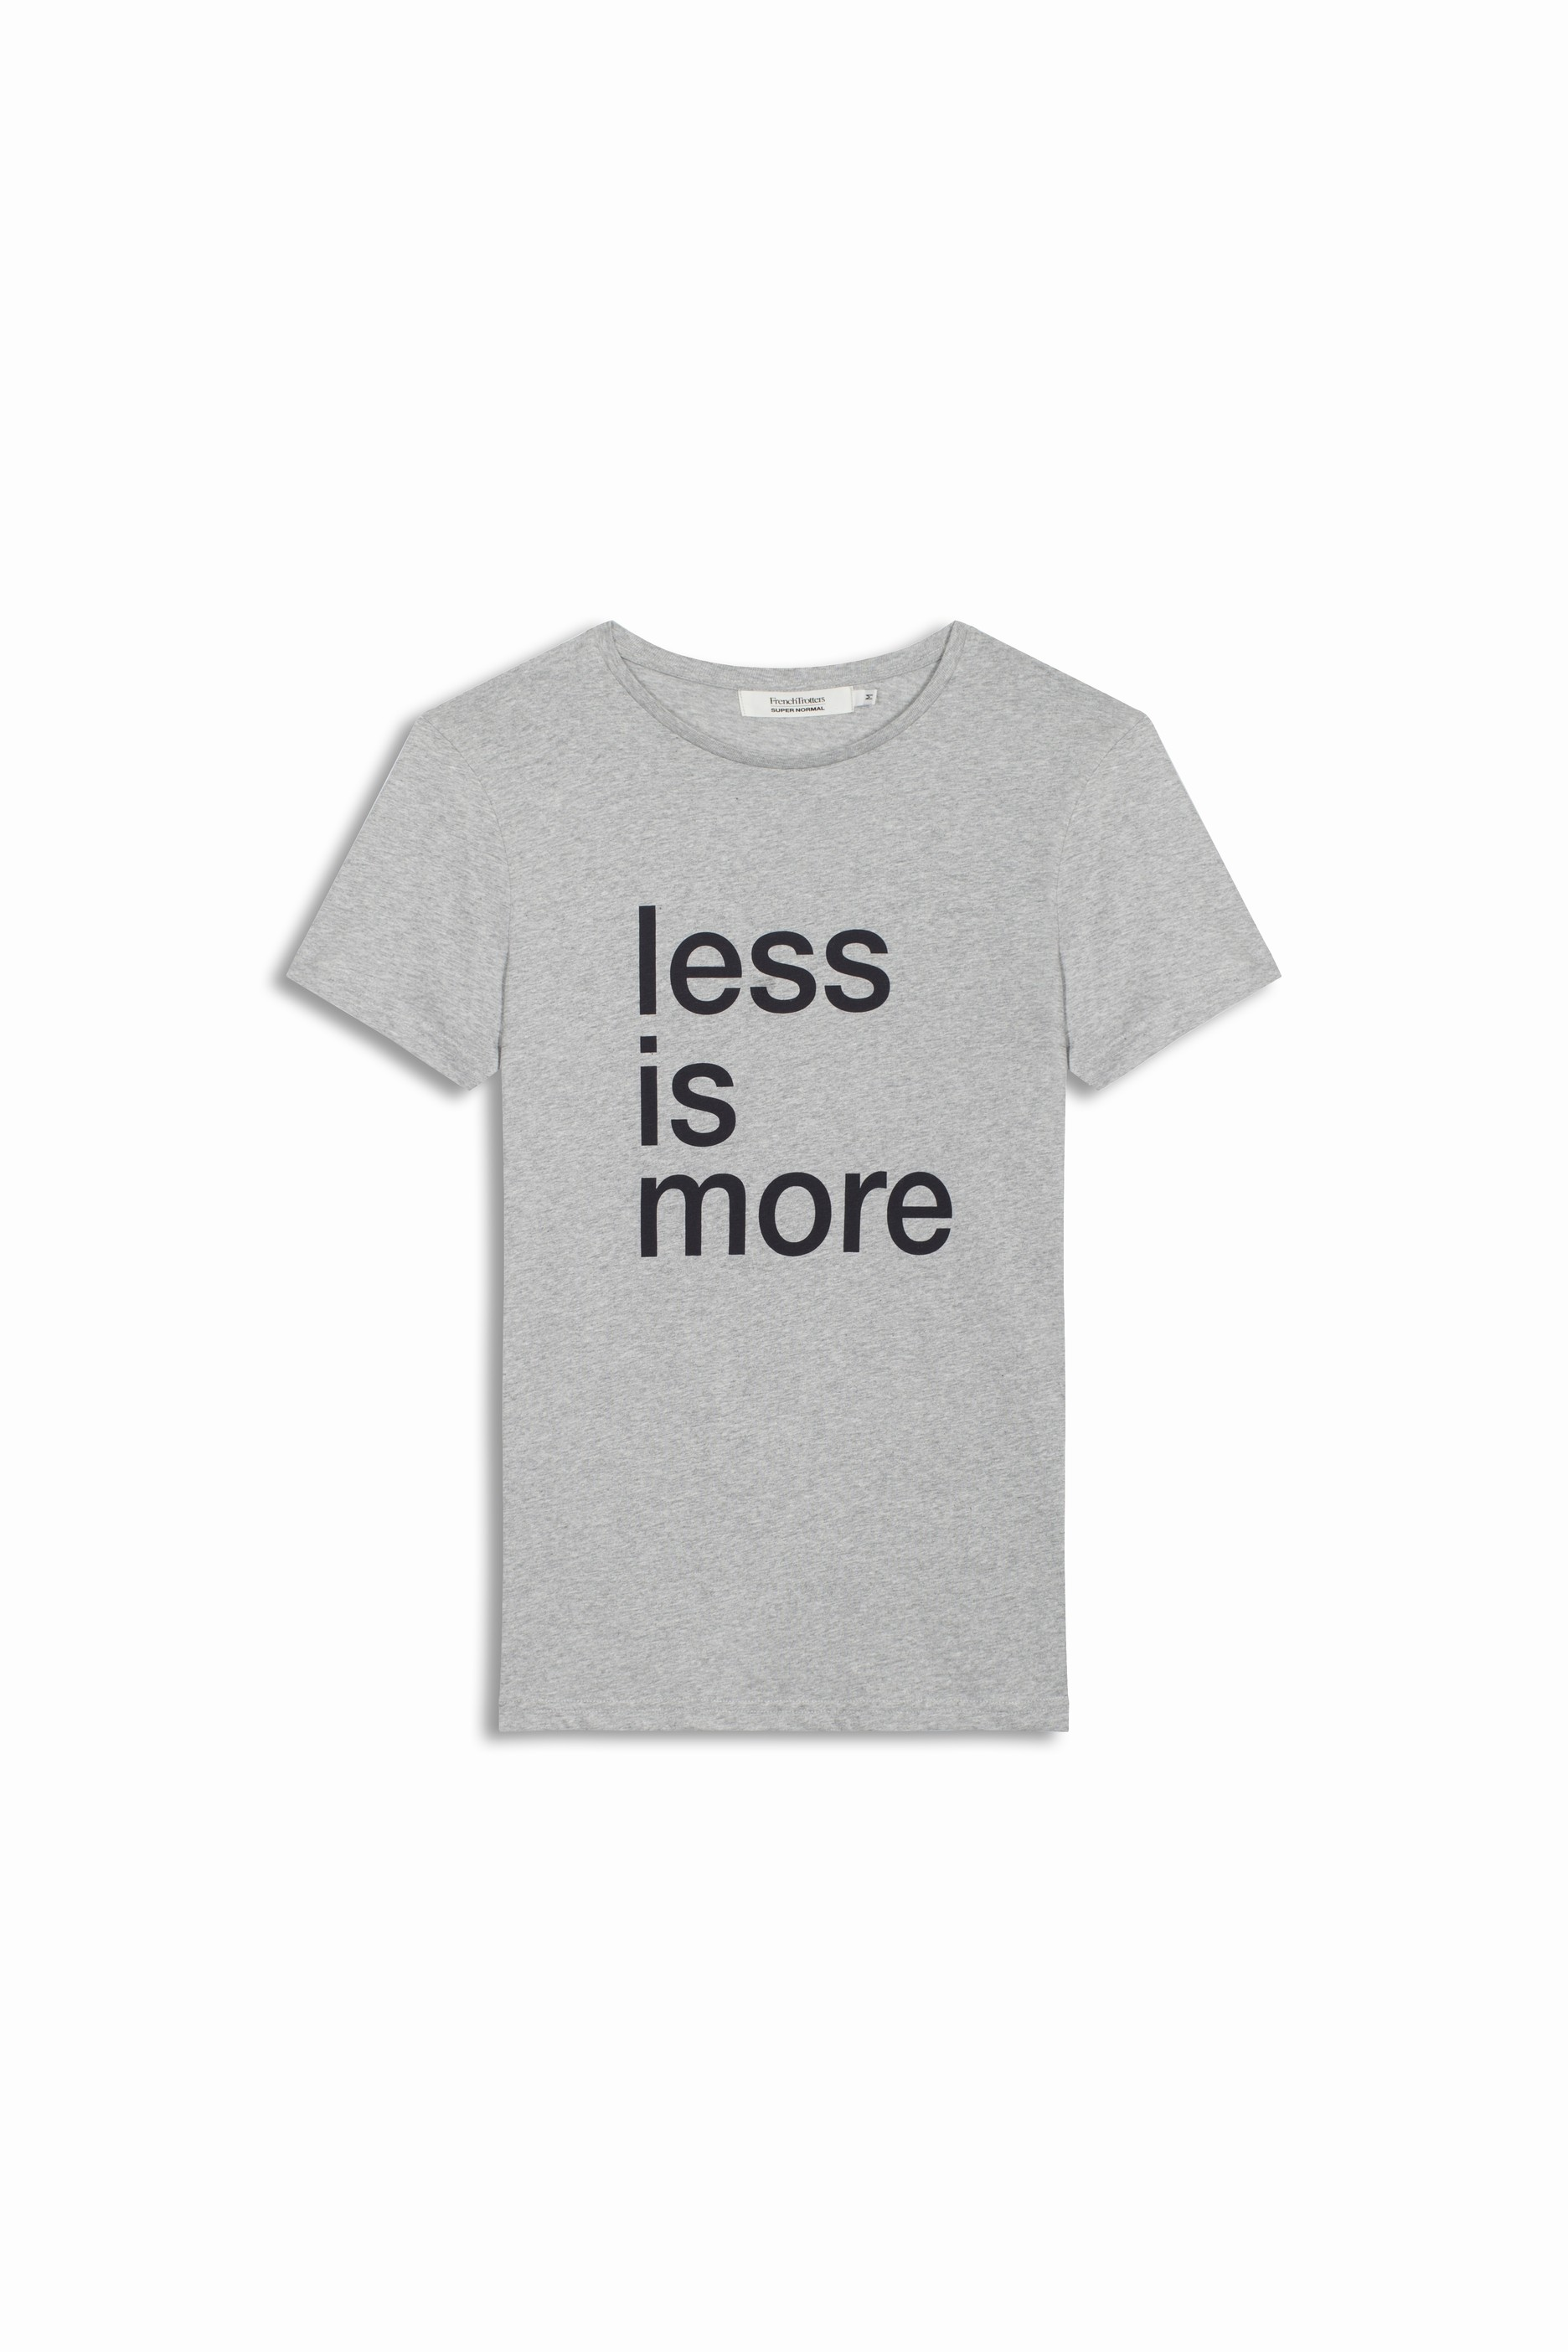 MARK LESS IS MORE - GREY